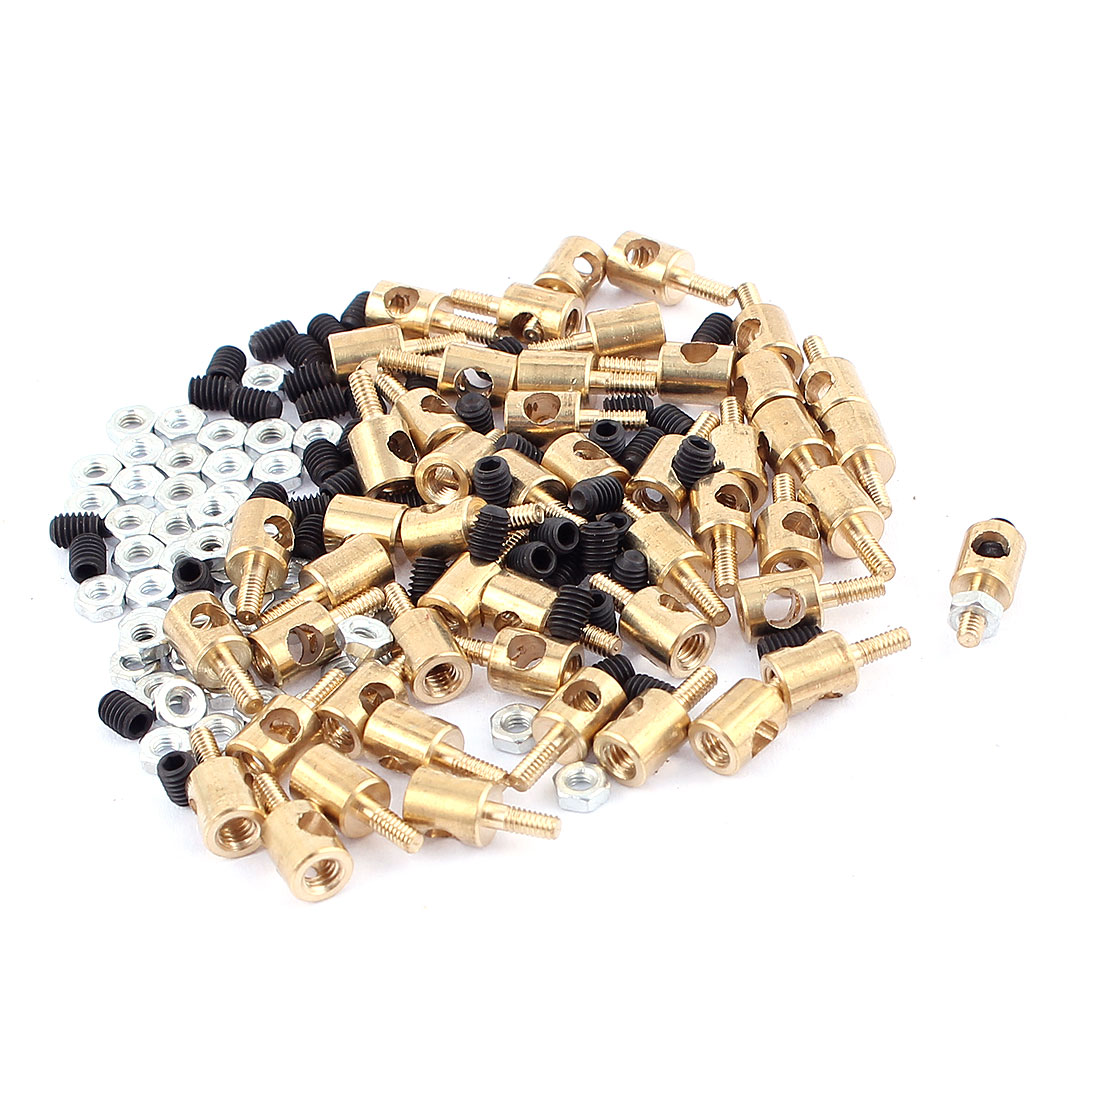 50pcs 5mm x 3mm Pushrod Linkage Stopper Metal for RC Model w Nuts